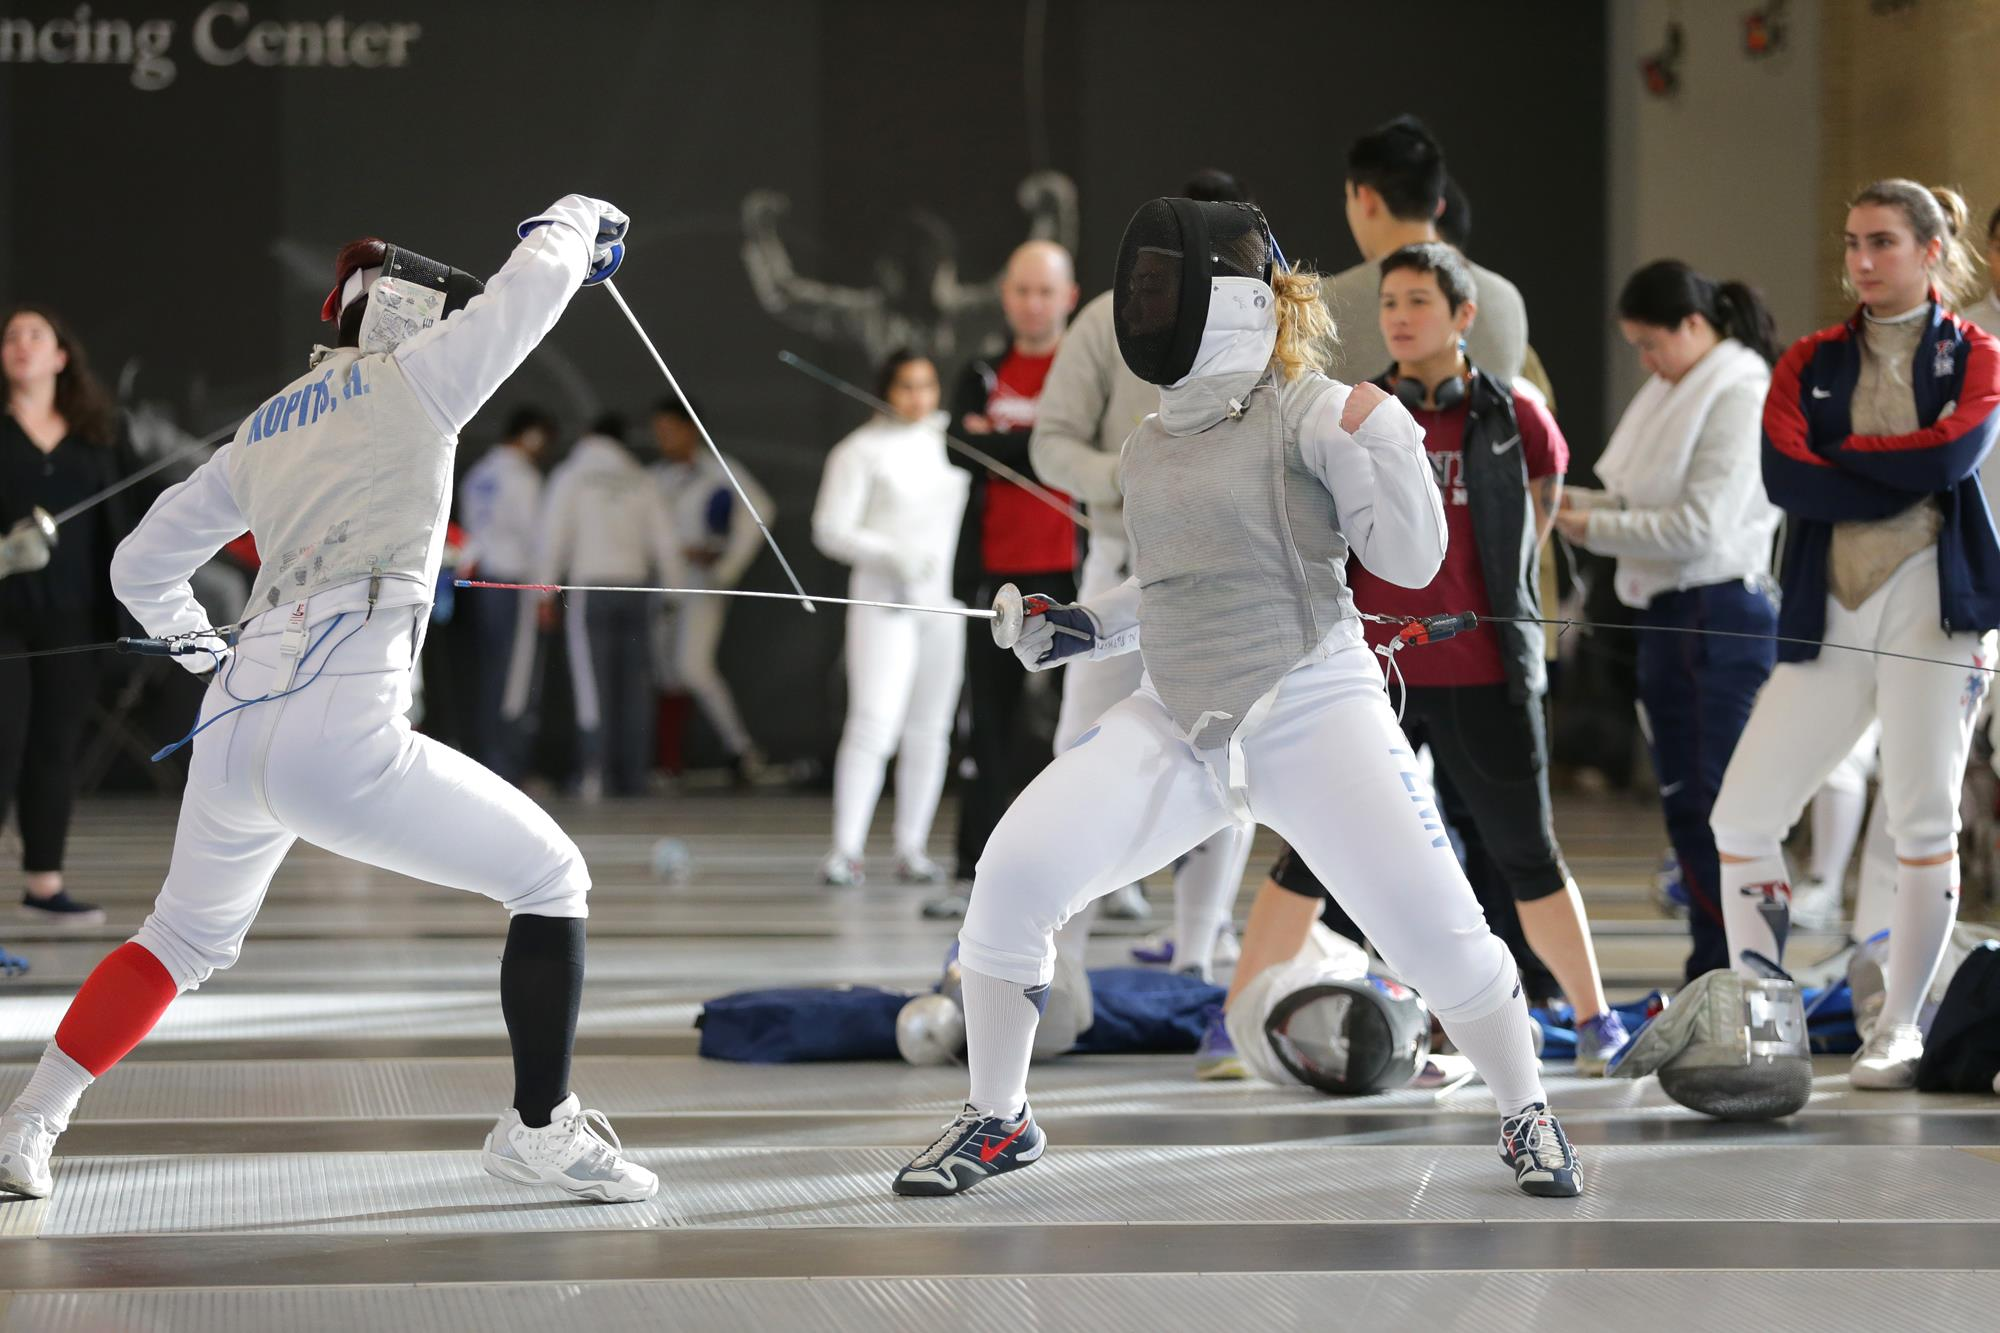 Discussion on this topic: Jeannie Elias, emily-jacobson-saber-fencer/